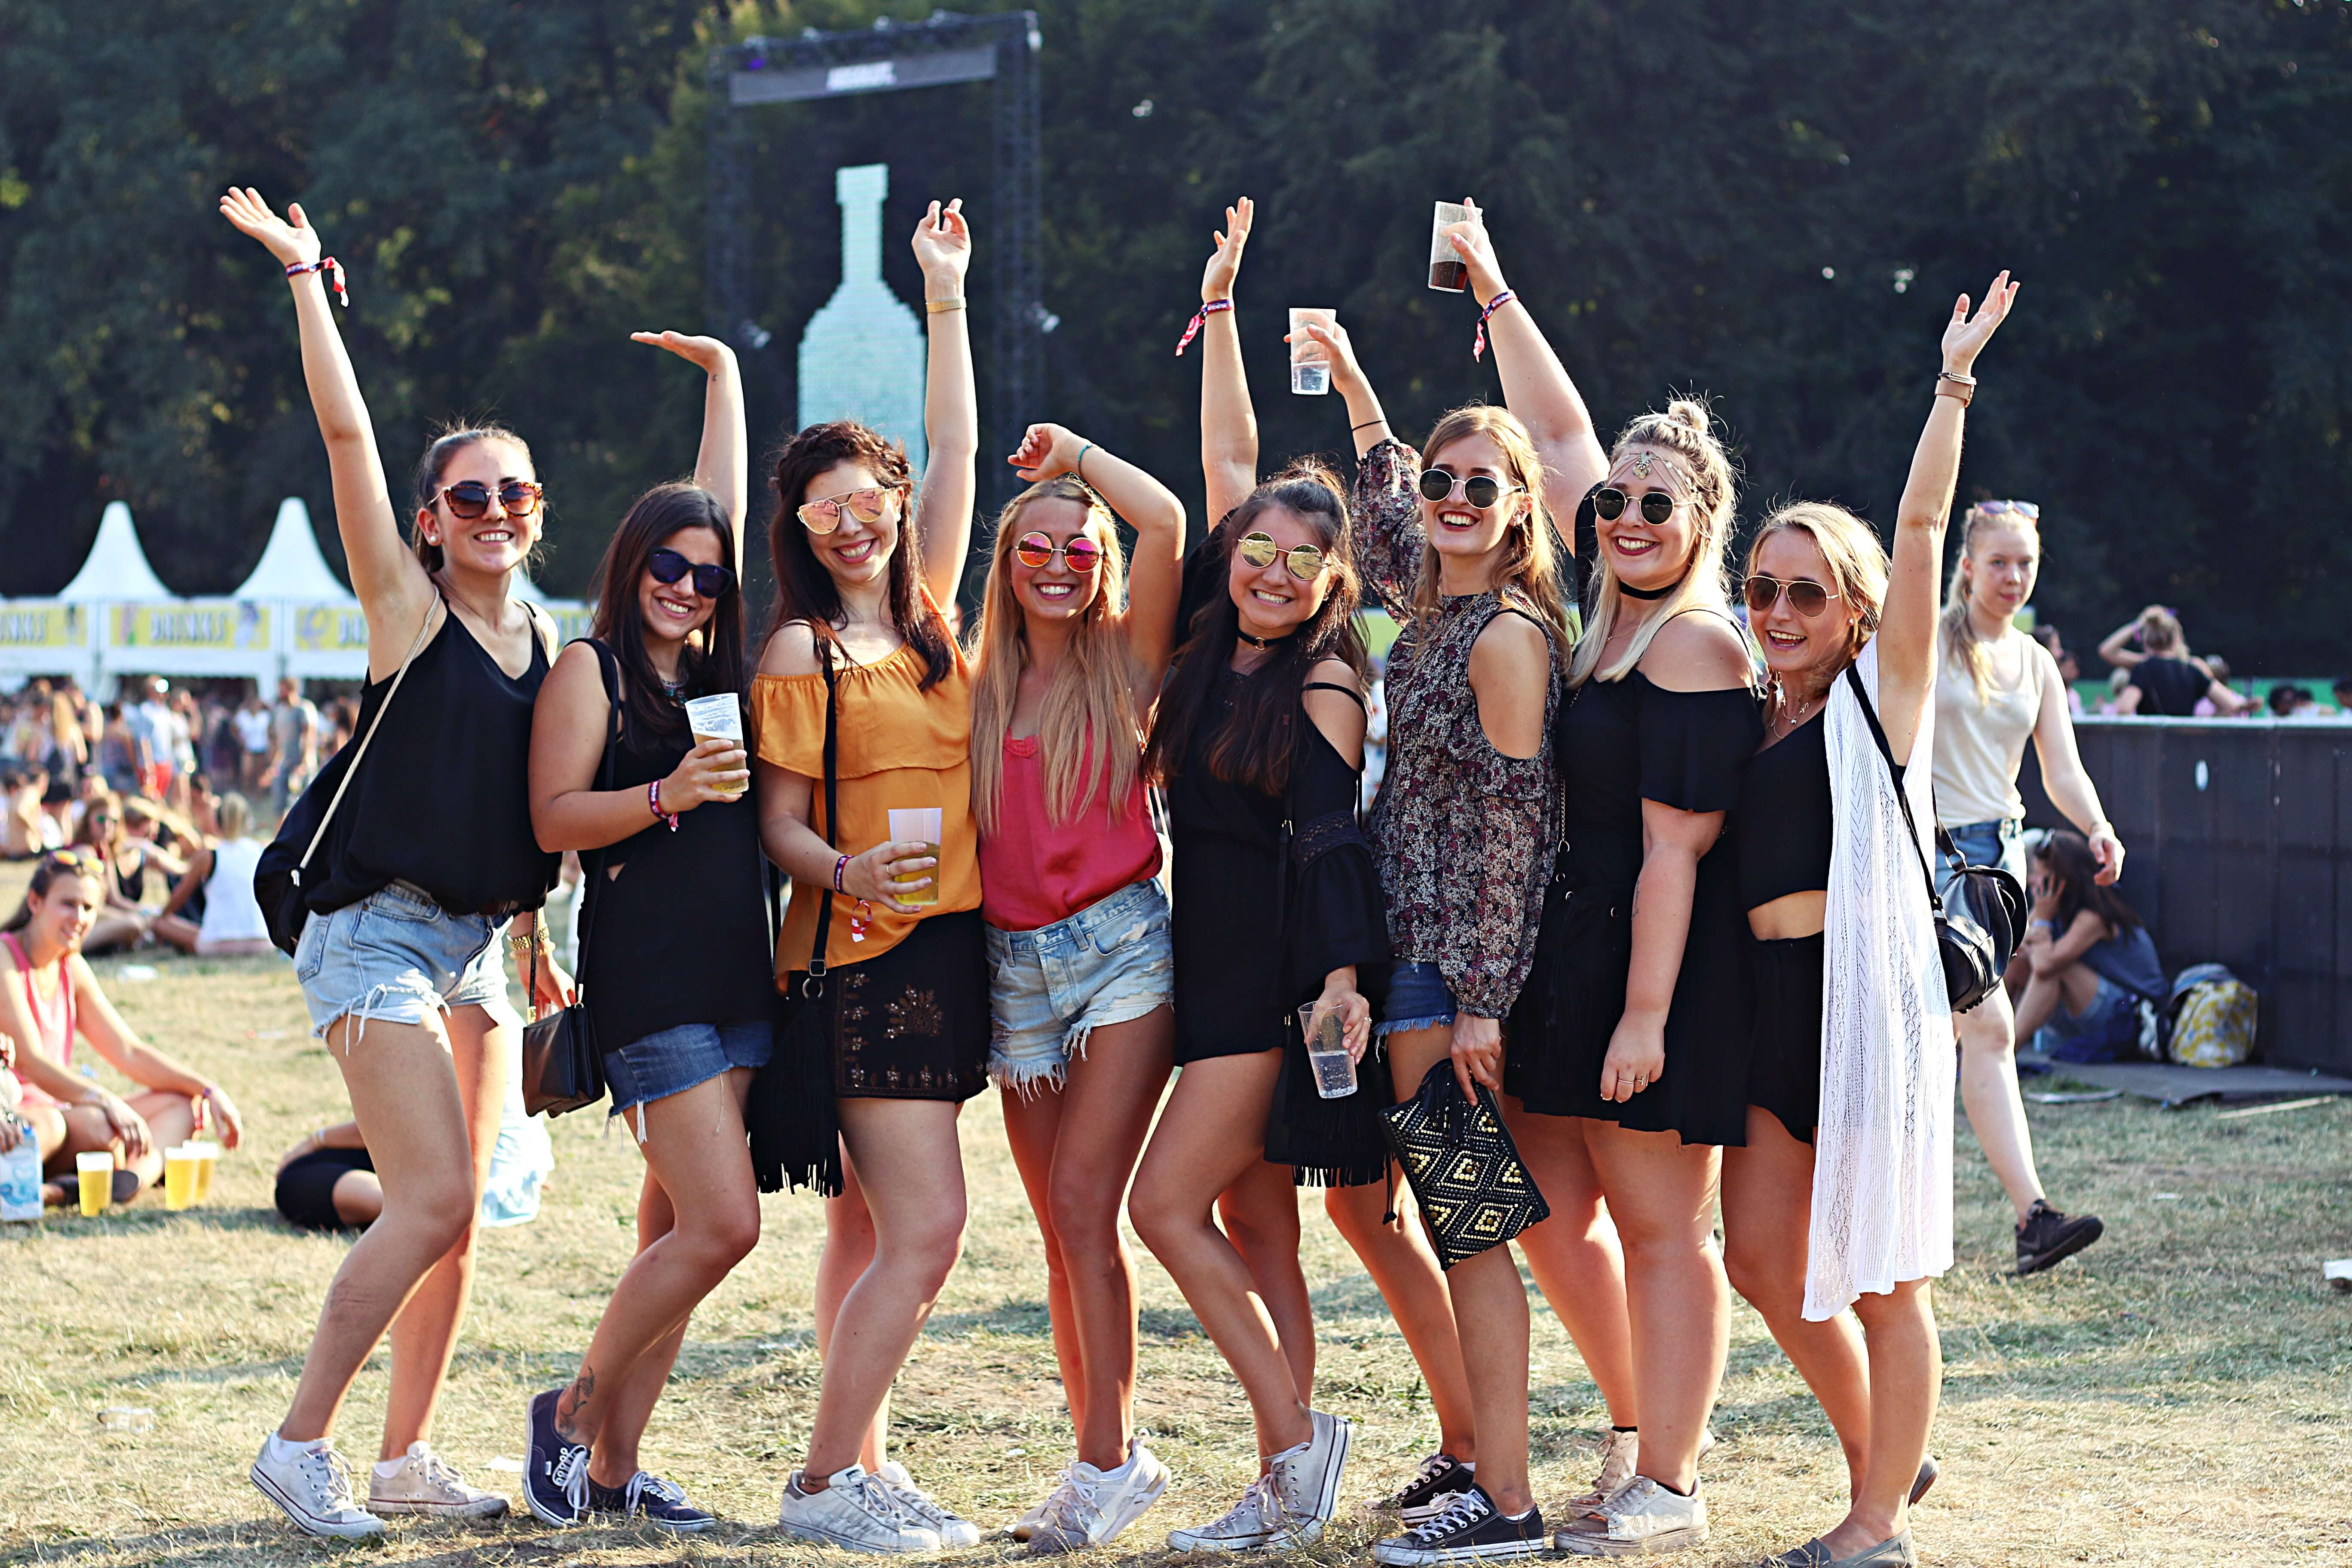 festival-sommer-lollapalooza-berlin-girls-outfits-outfit